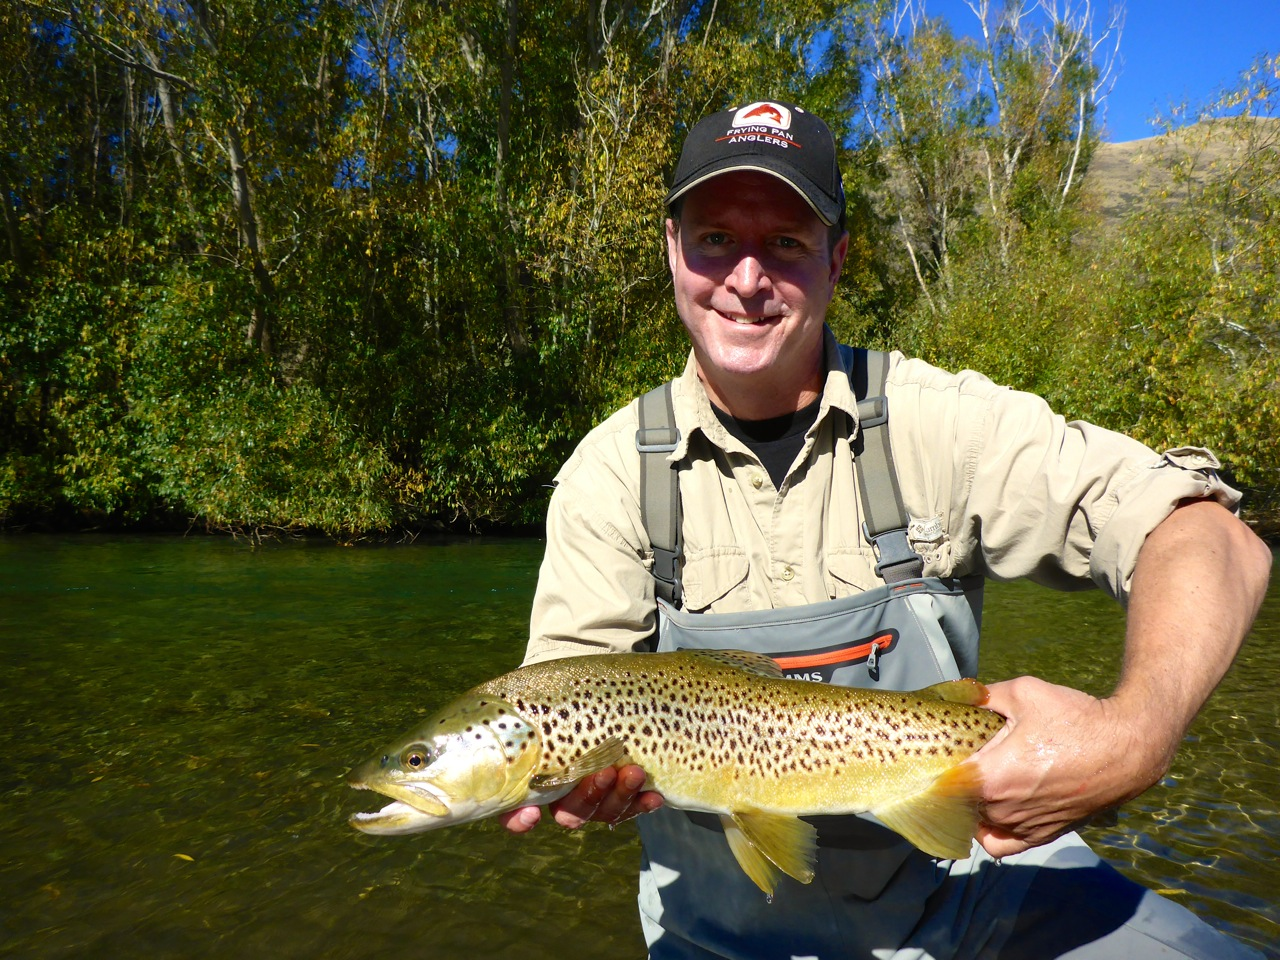 Happiness can simply be a trout!